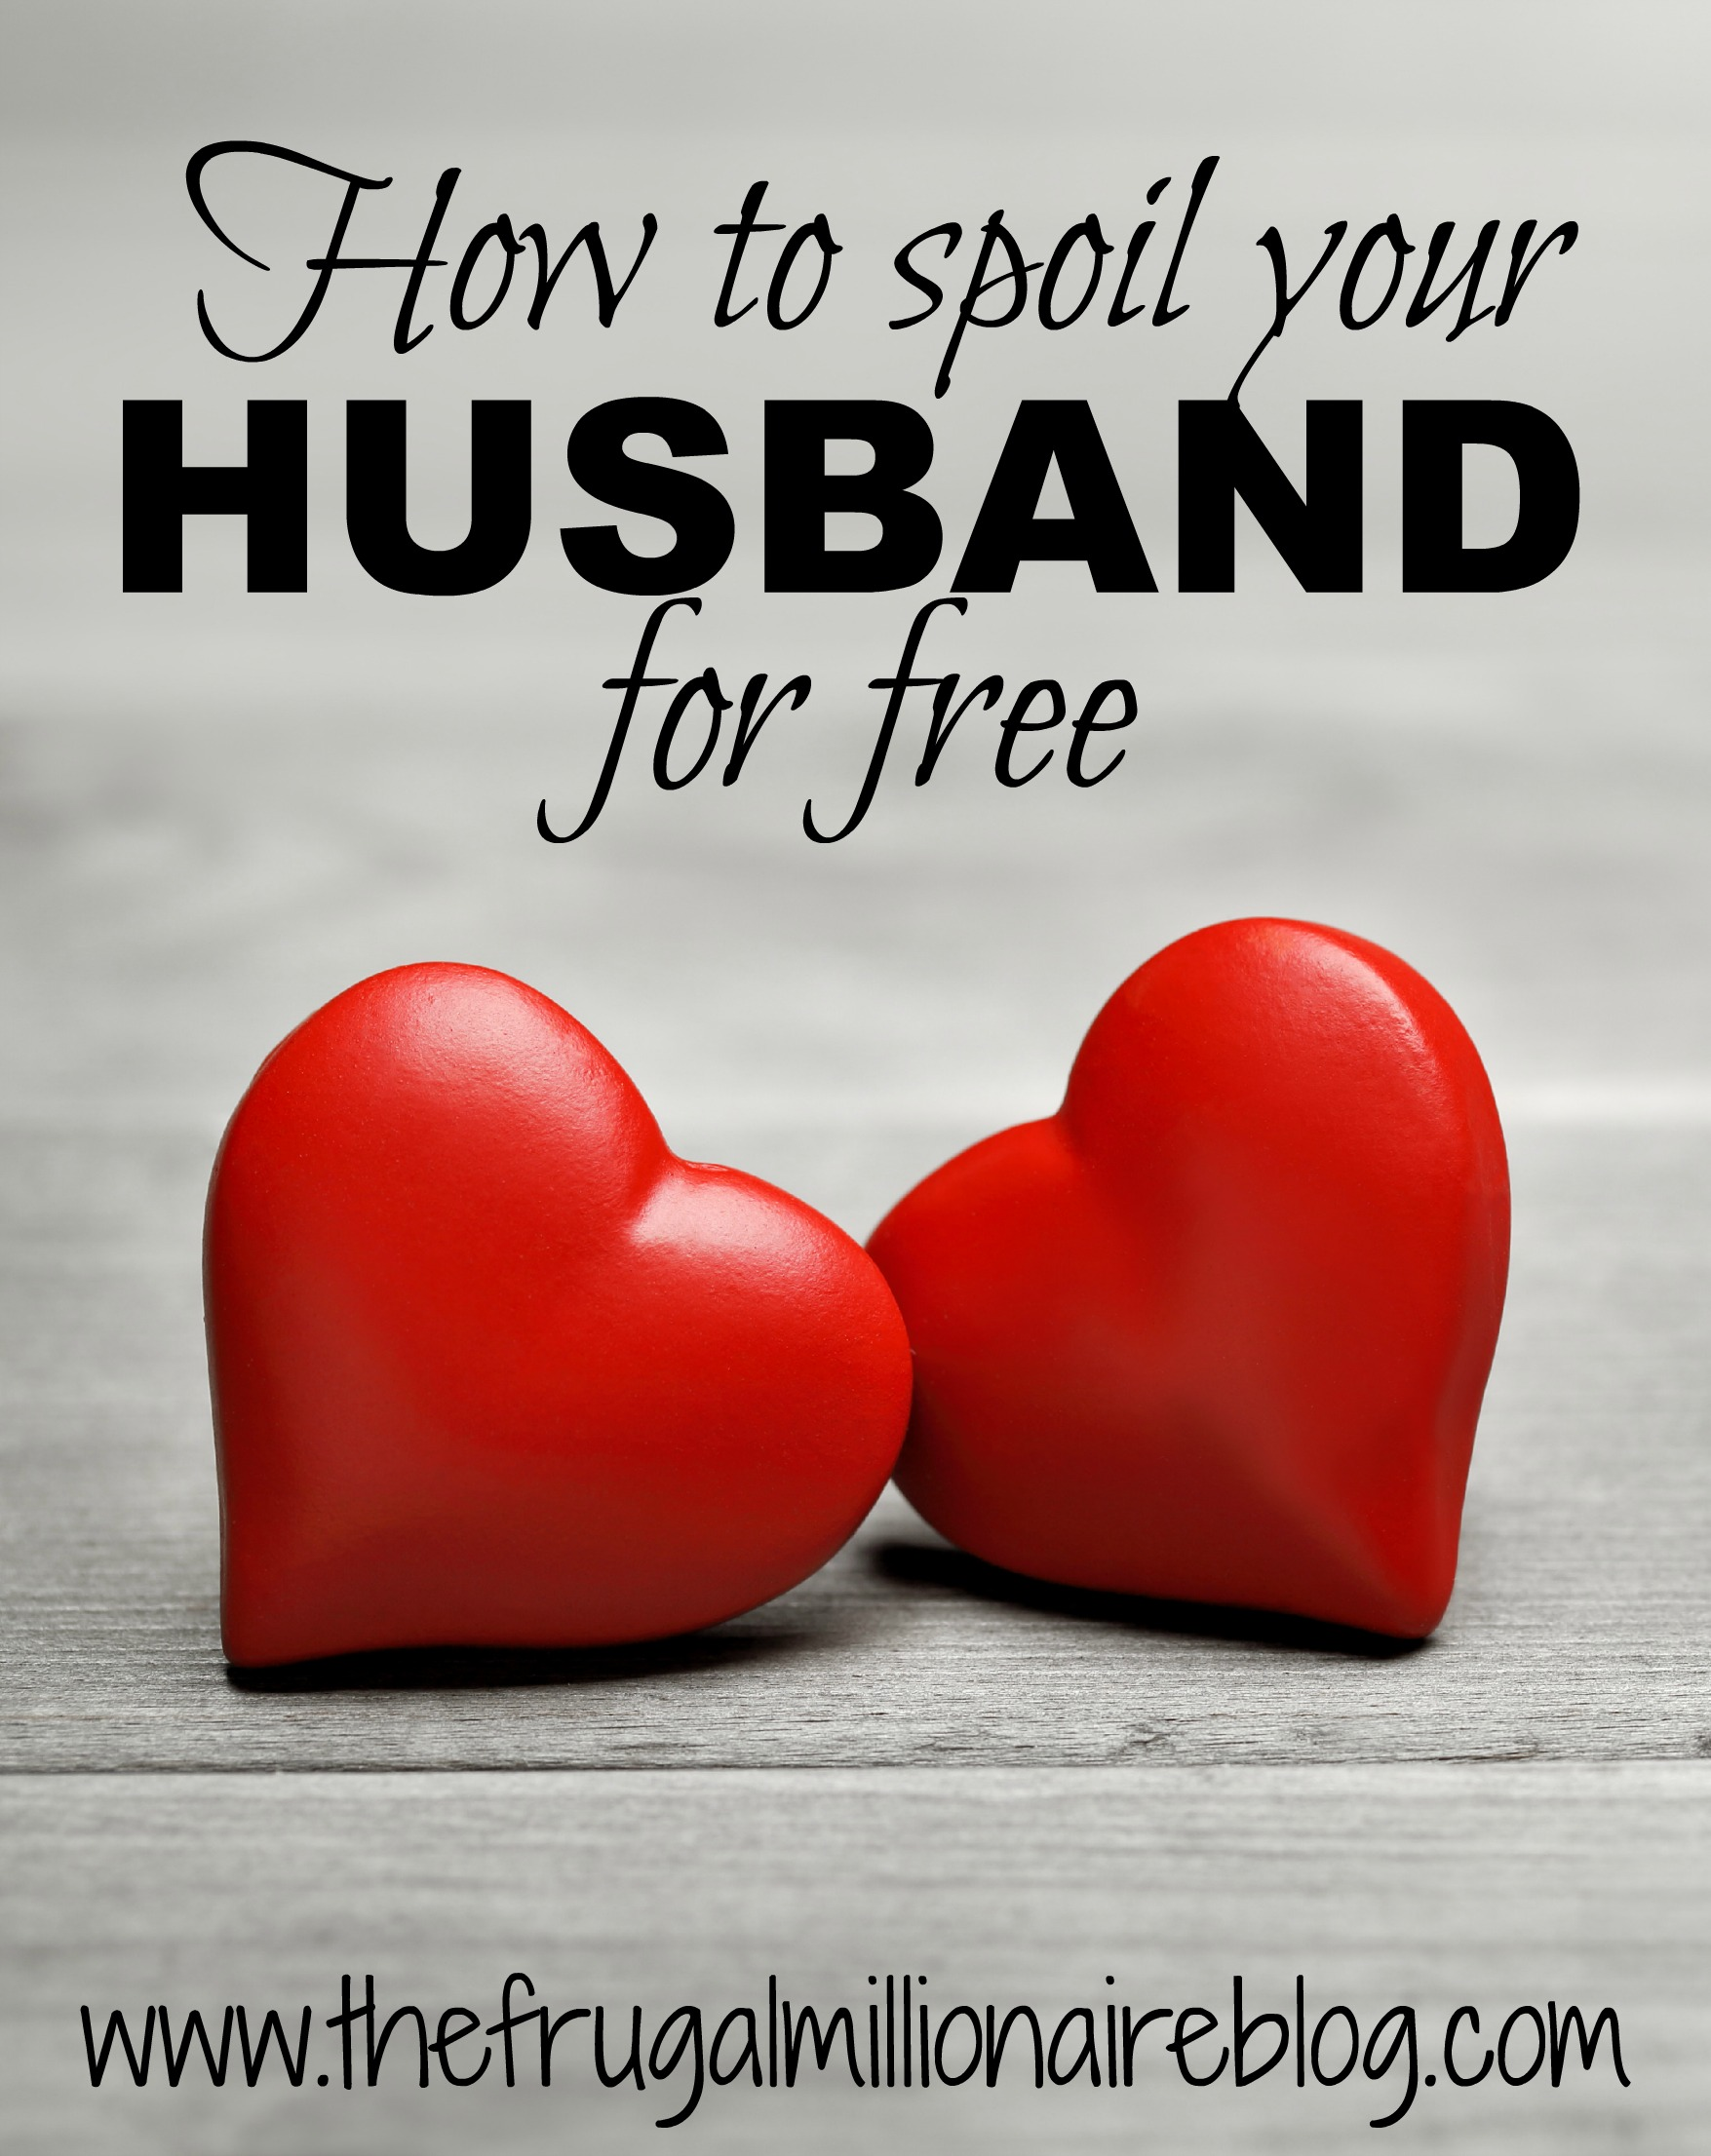 How to Spoil Your Husband without Spending Money - the